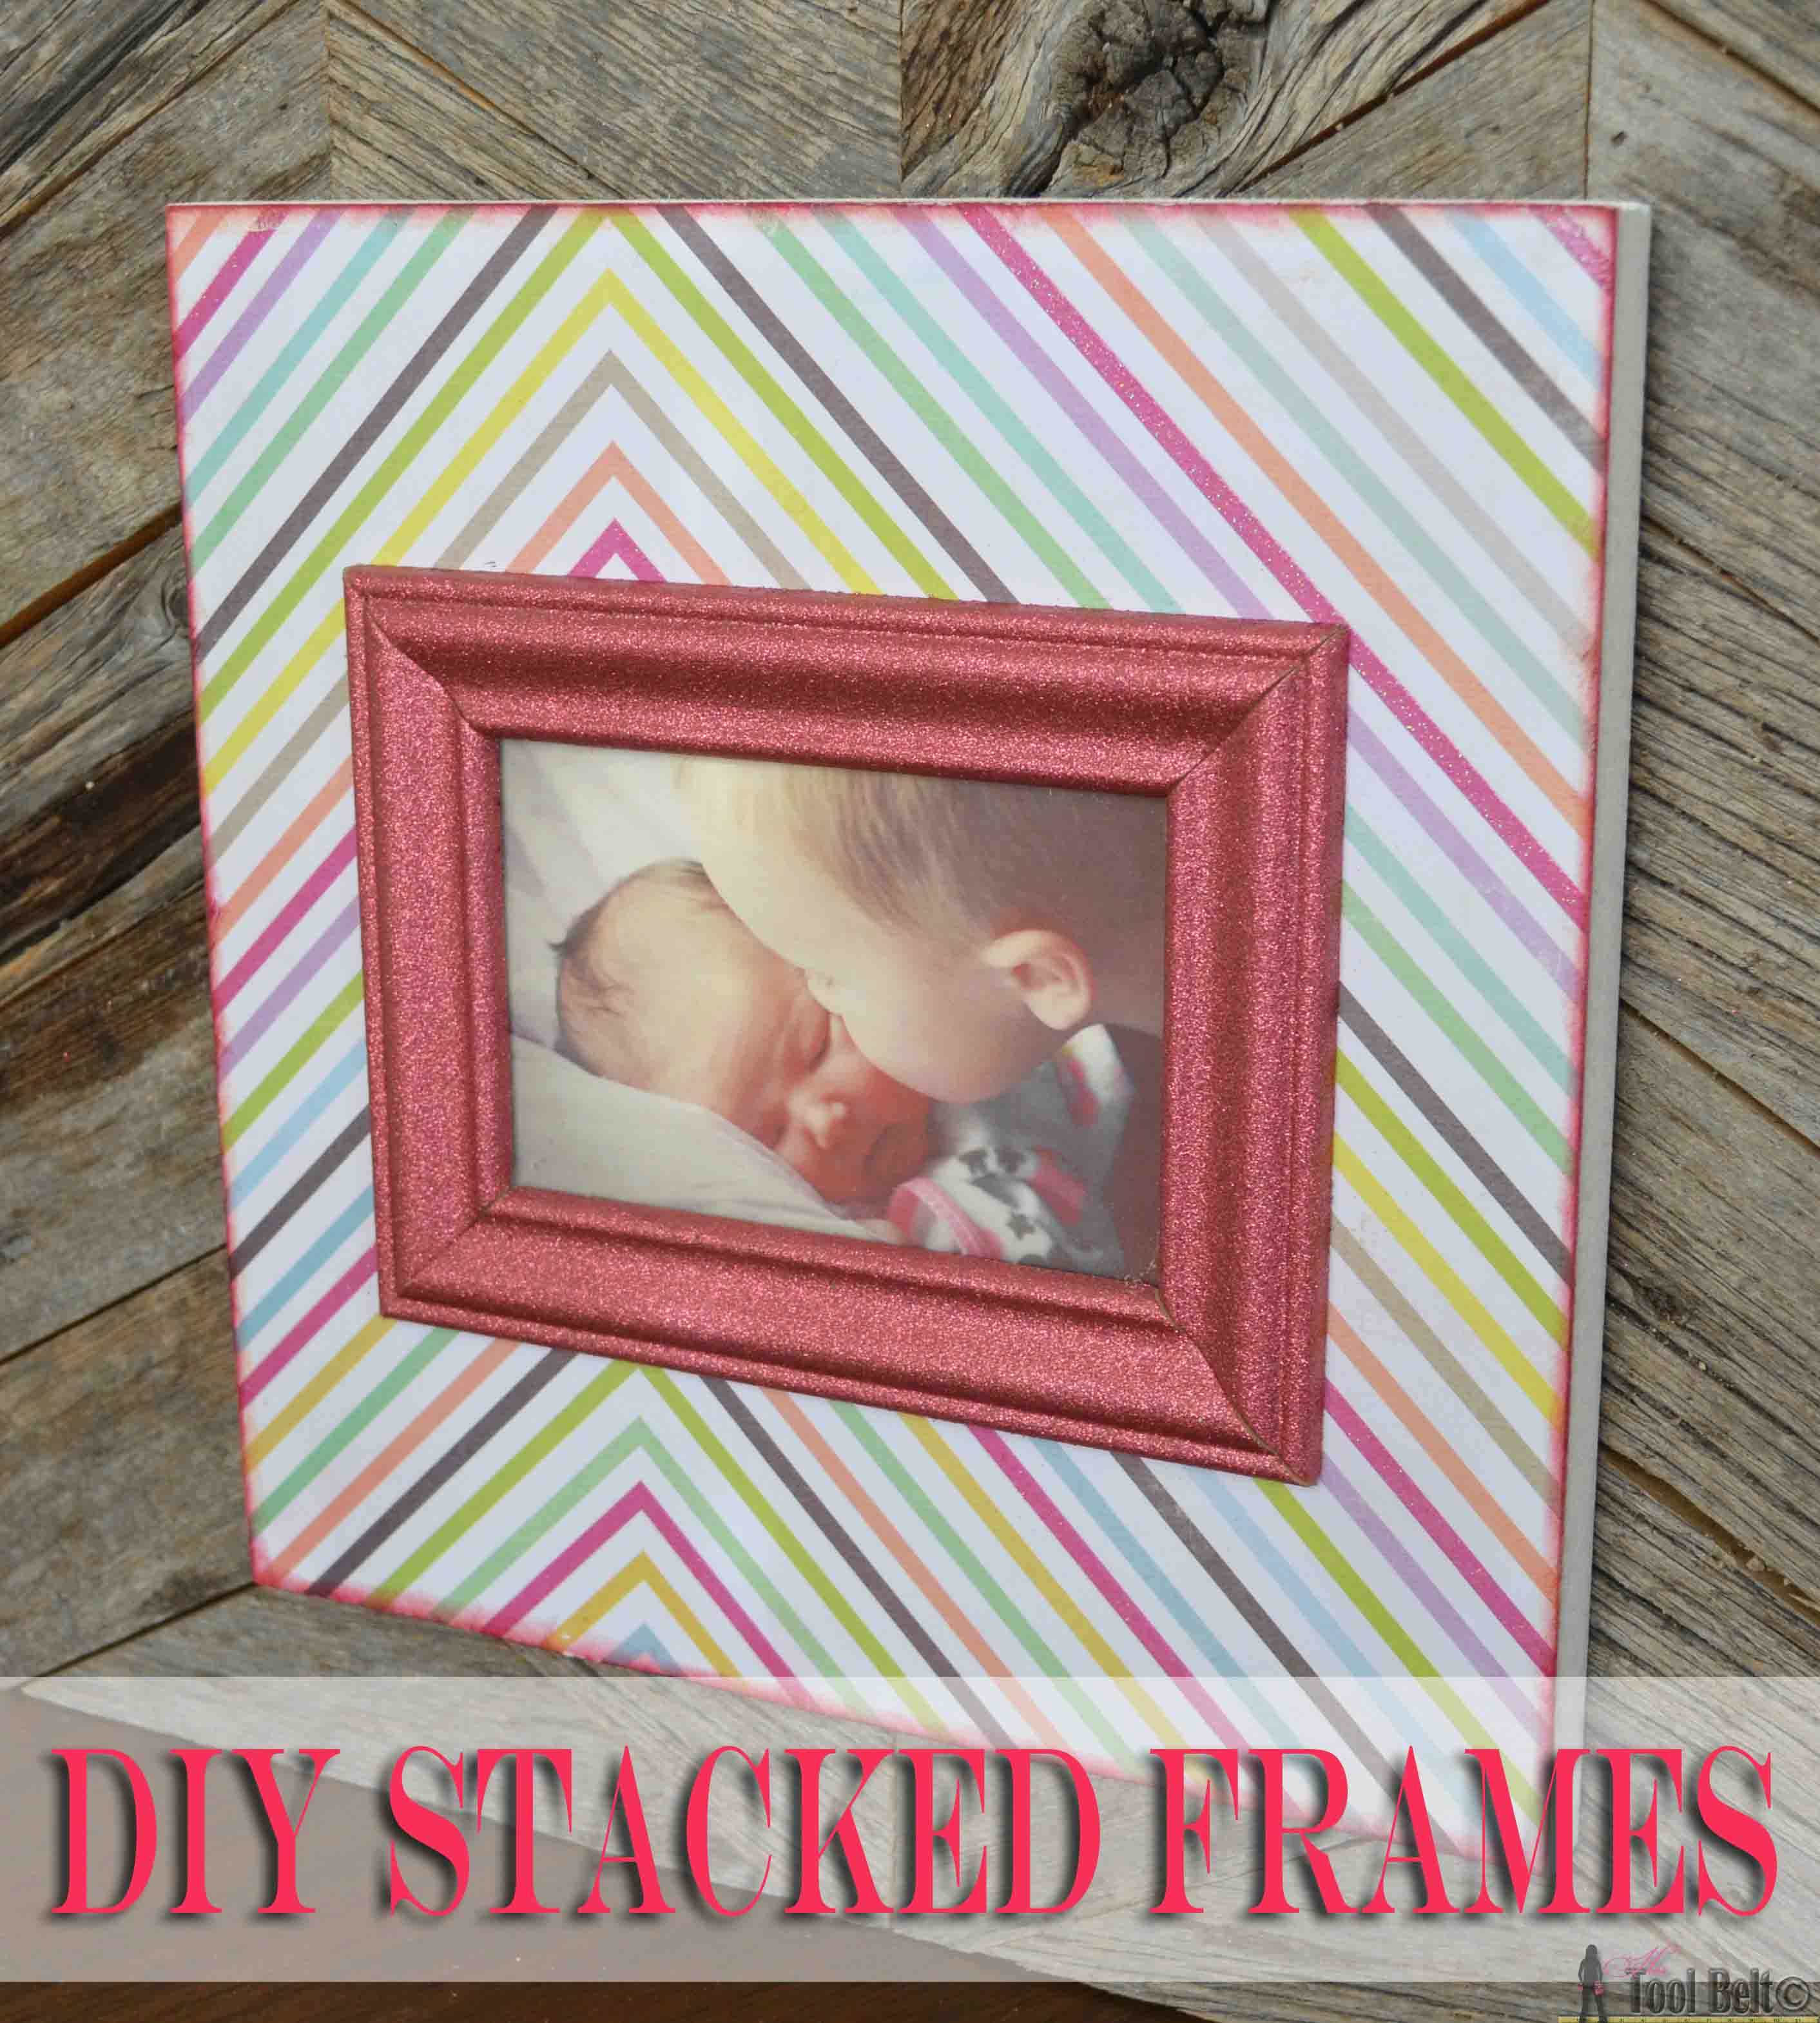 Diy stacked picture frame made to be a momma create an awesome custom gallery wall with these diy stacked picture frames free woodworking plans jeuxipadfo Choice Image